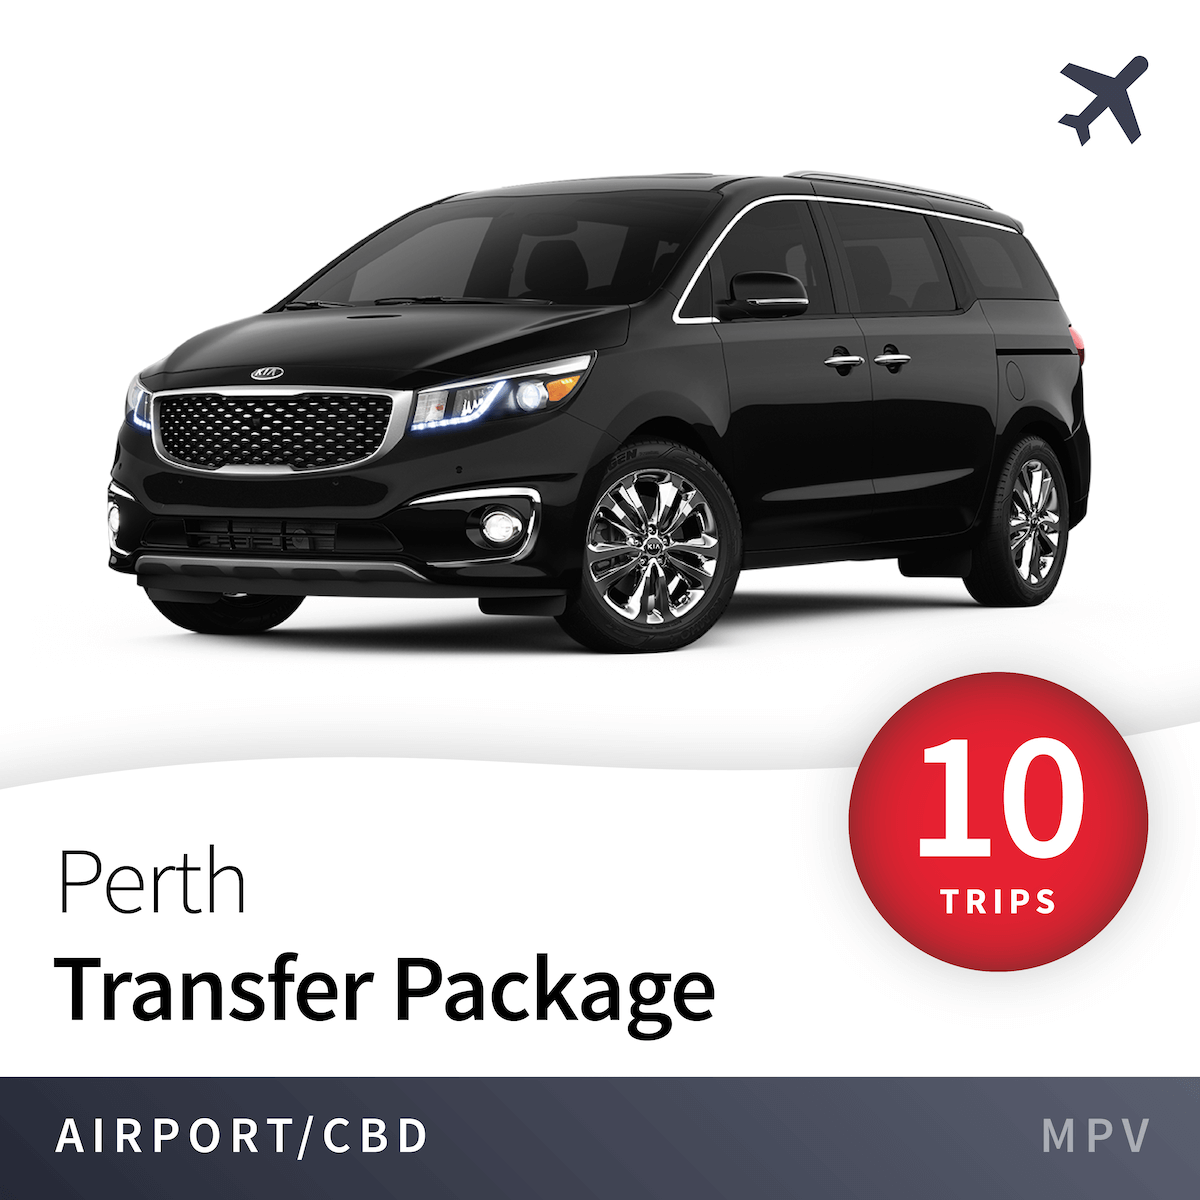 Perth Airport Transfer Package - MPV (10 Trips) 3